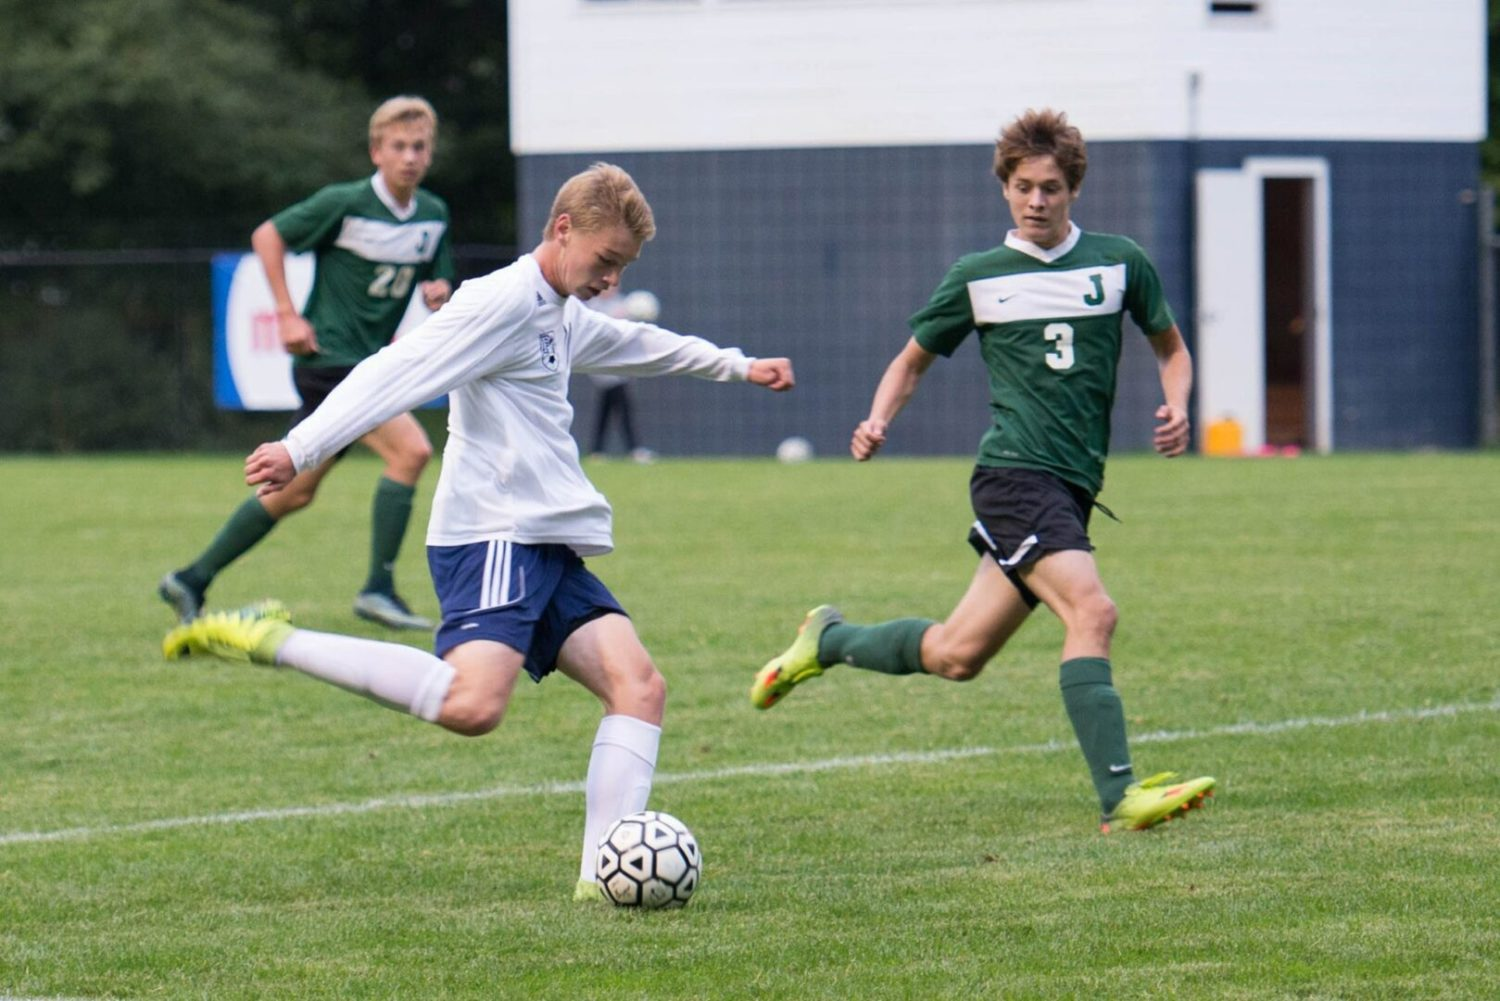 Fruitport's latest big scorer, Zack Shane, ready to lead his team into districts